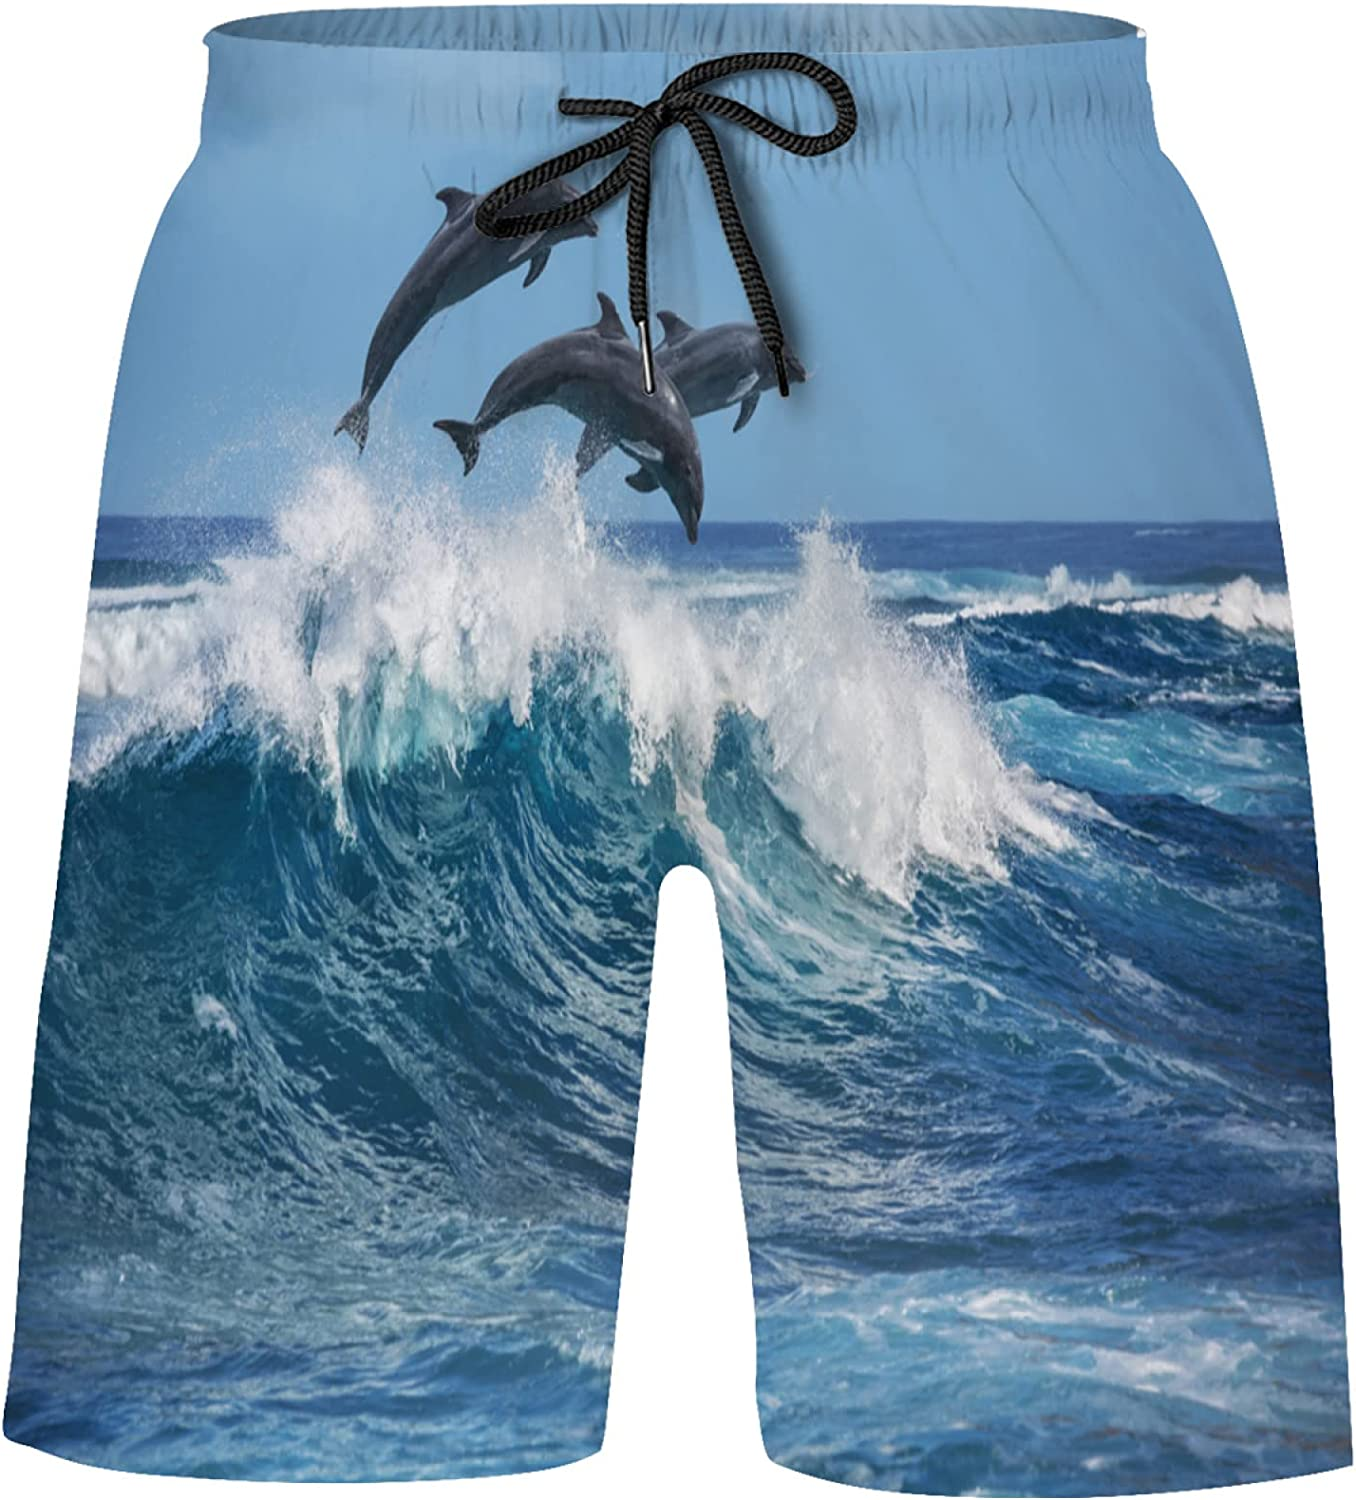 Beautiful Dolphins Jumped Super Special Minneapolis Mall SALE held Over The Suits Bathing Waves Breaking